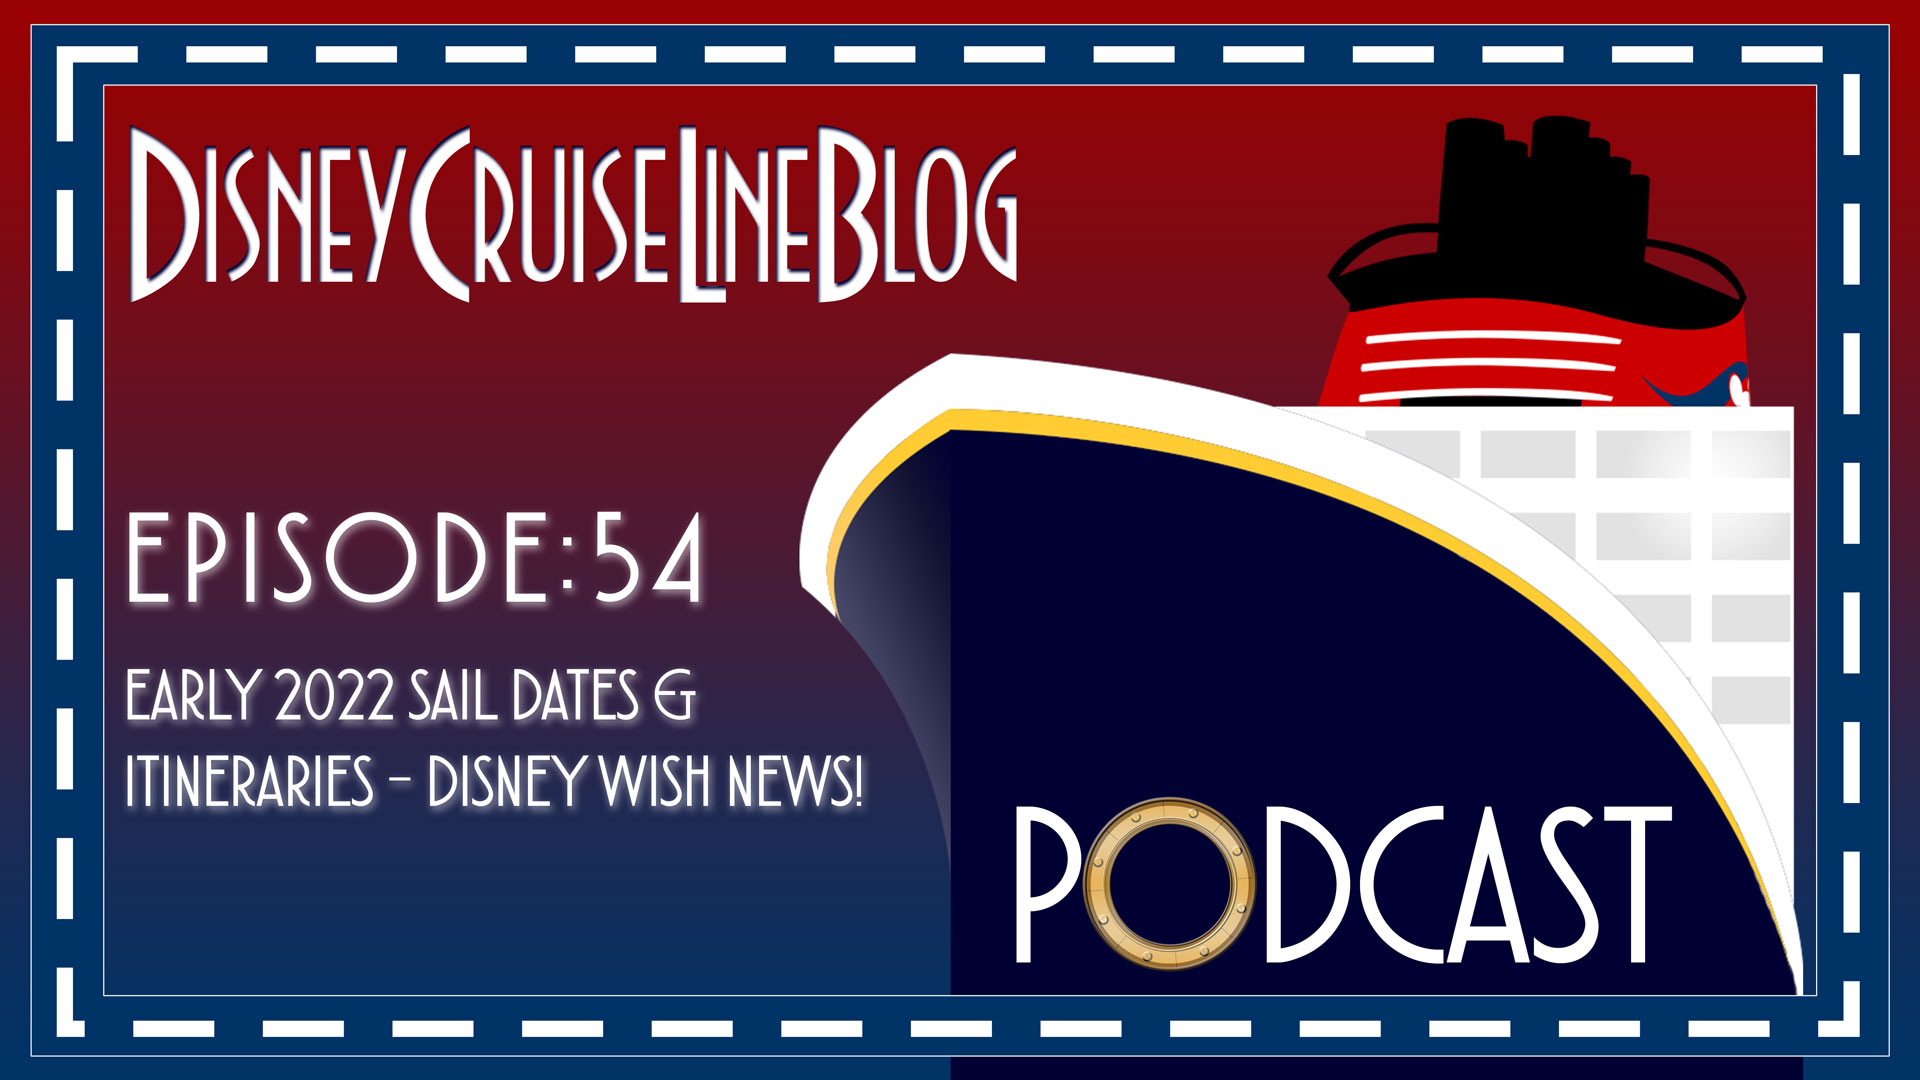 DCL Blog Podcast Episode 54 Itinerary Announcement Early 2022